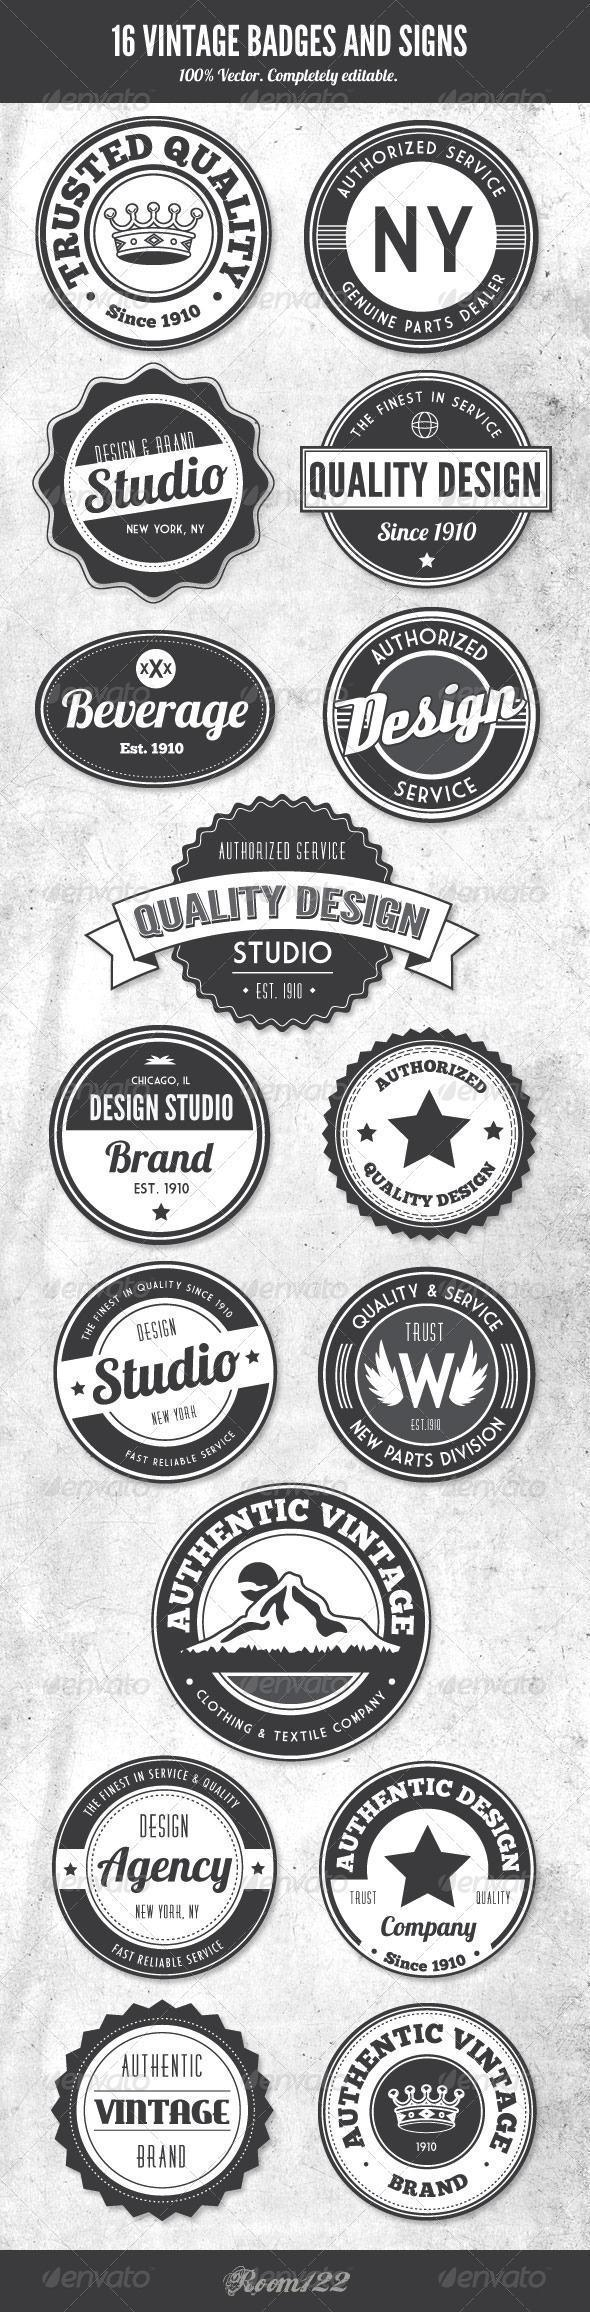 Badge and Label Vector Template with PSD File | PSDDude